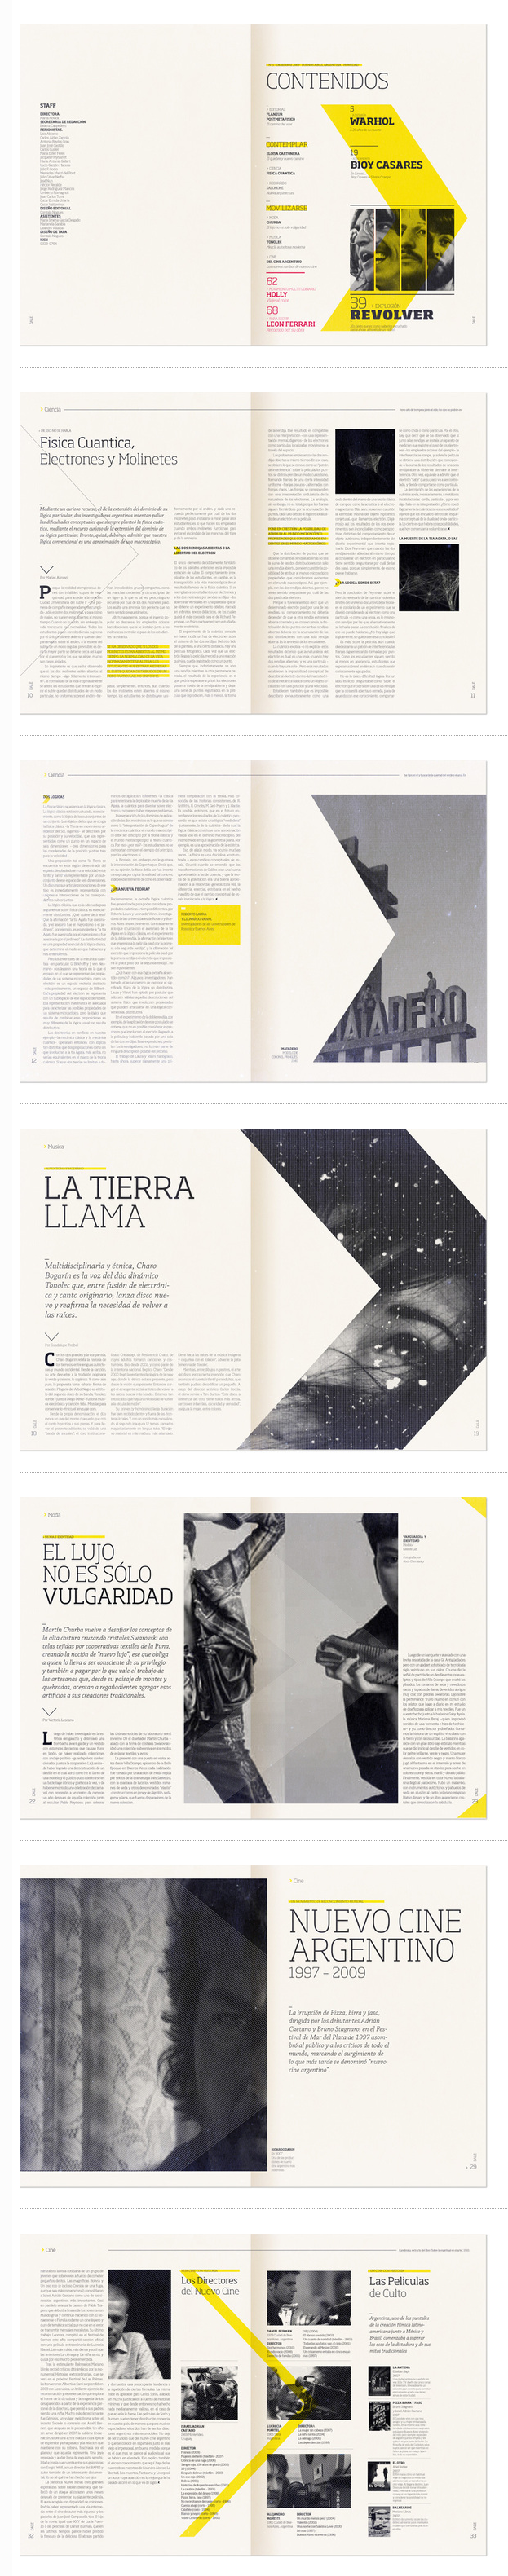 Display of successful integration between graphic elements and typography. Interesting use of geometrical shape, and an emphasis on colour as a feature.